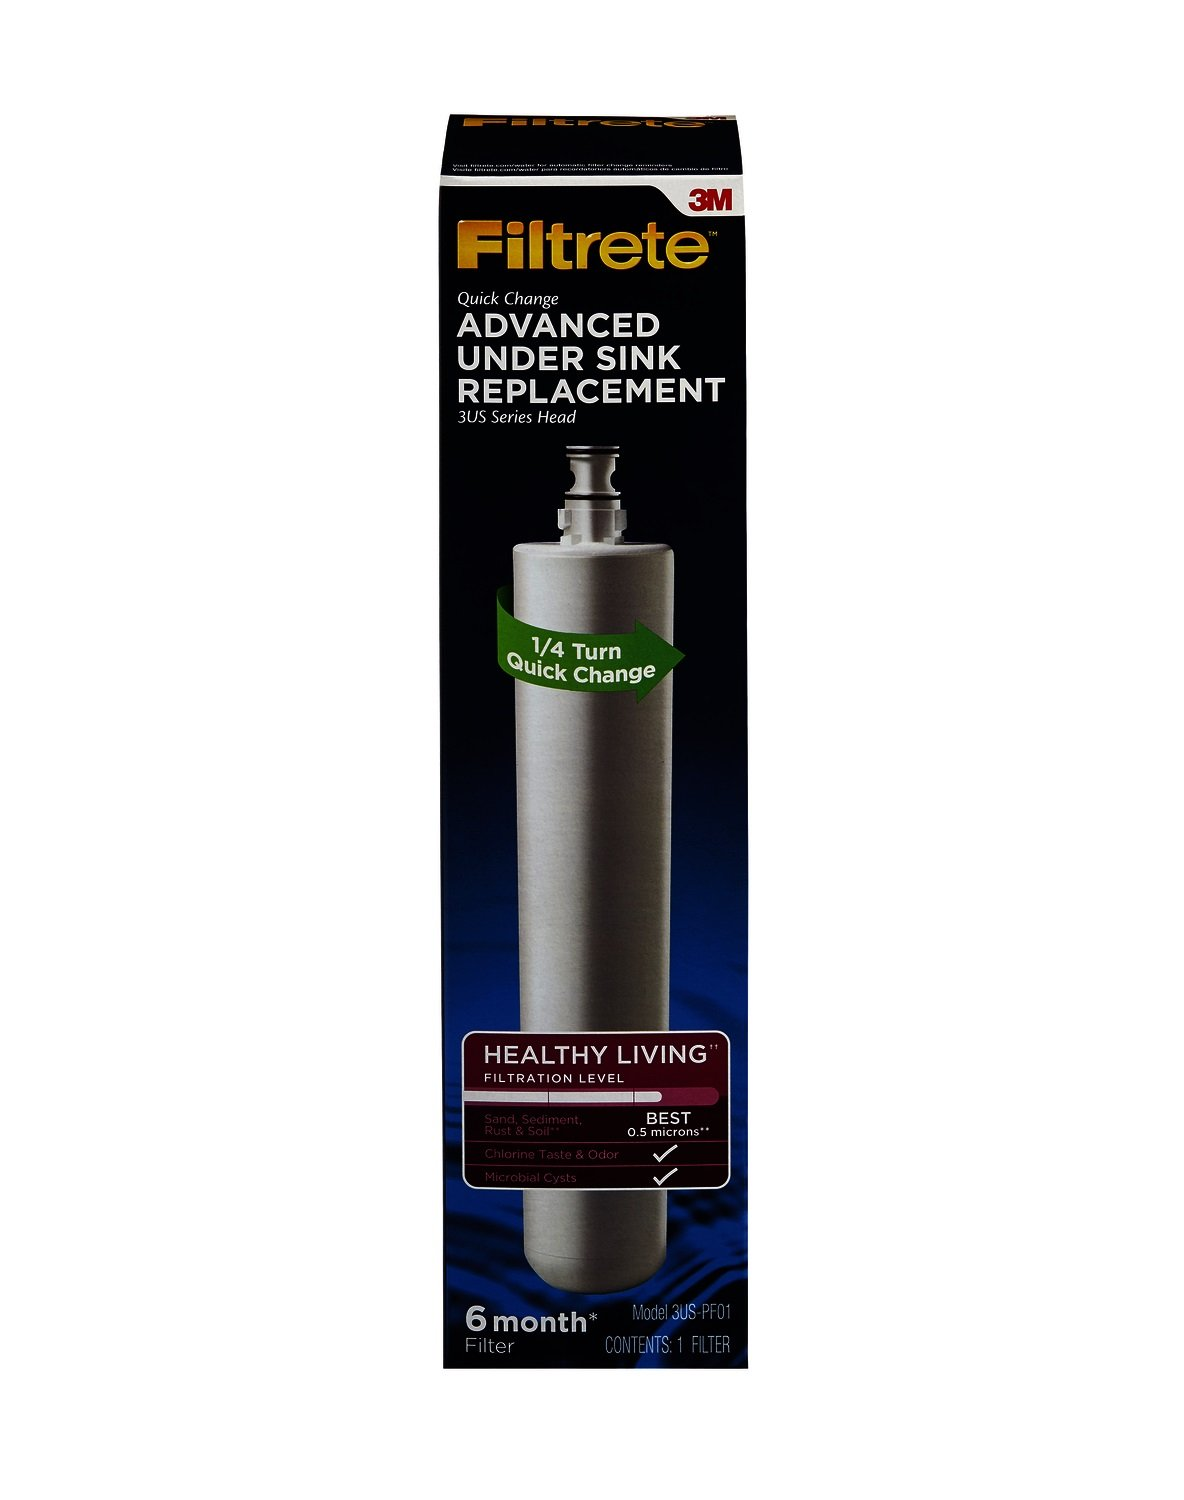 Filtrete Advanced Under Sink Quick Change Water Filtration Filter, 6 Month Filter, Reduces Microbial Cysts, 0.5 Microns Sediment and Chlorine Taste & Odor, (3US-PF01) by Filtrete (Image #2)